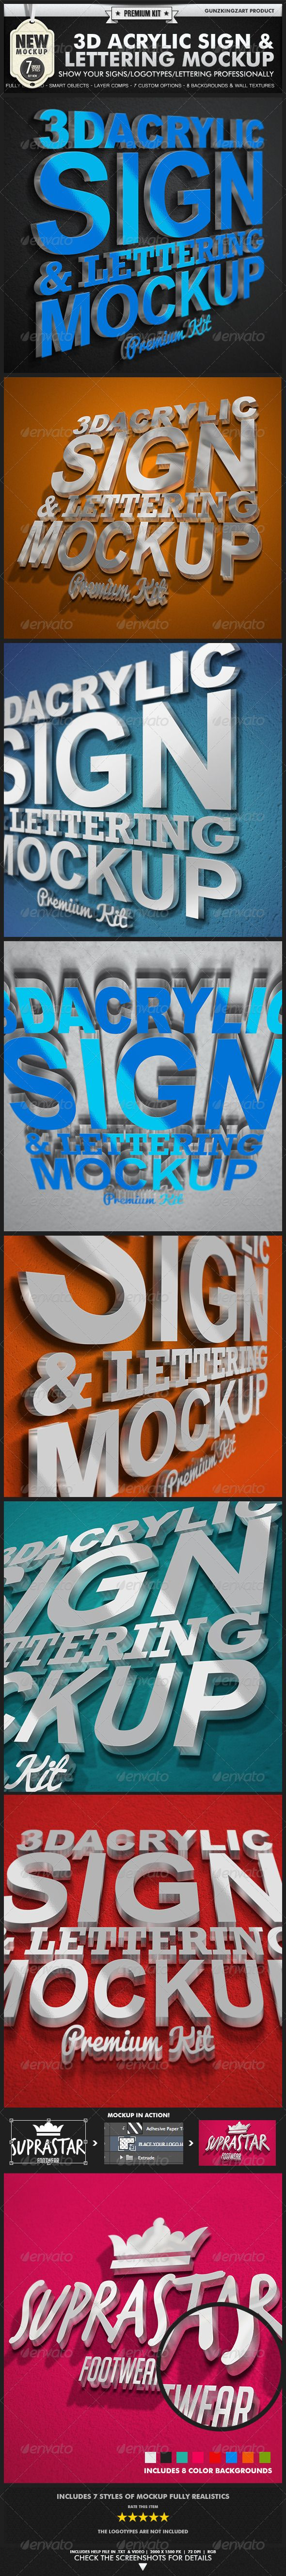 3D Acrylic Sign Mockup - Premium Kit